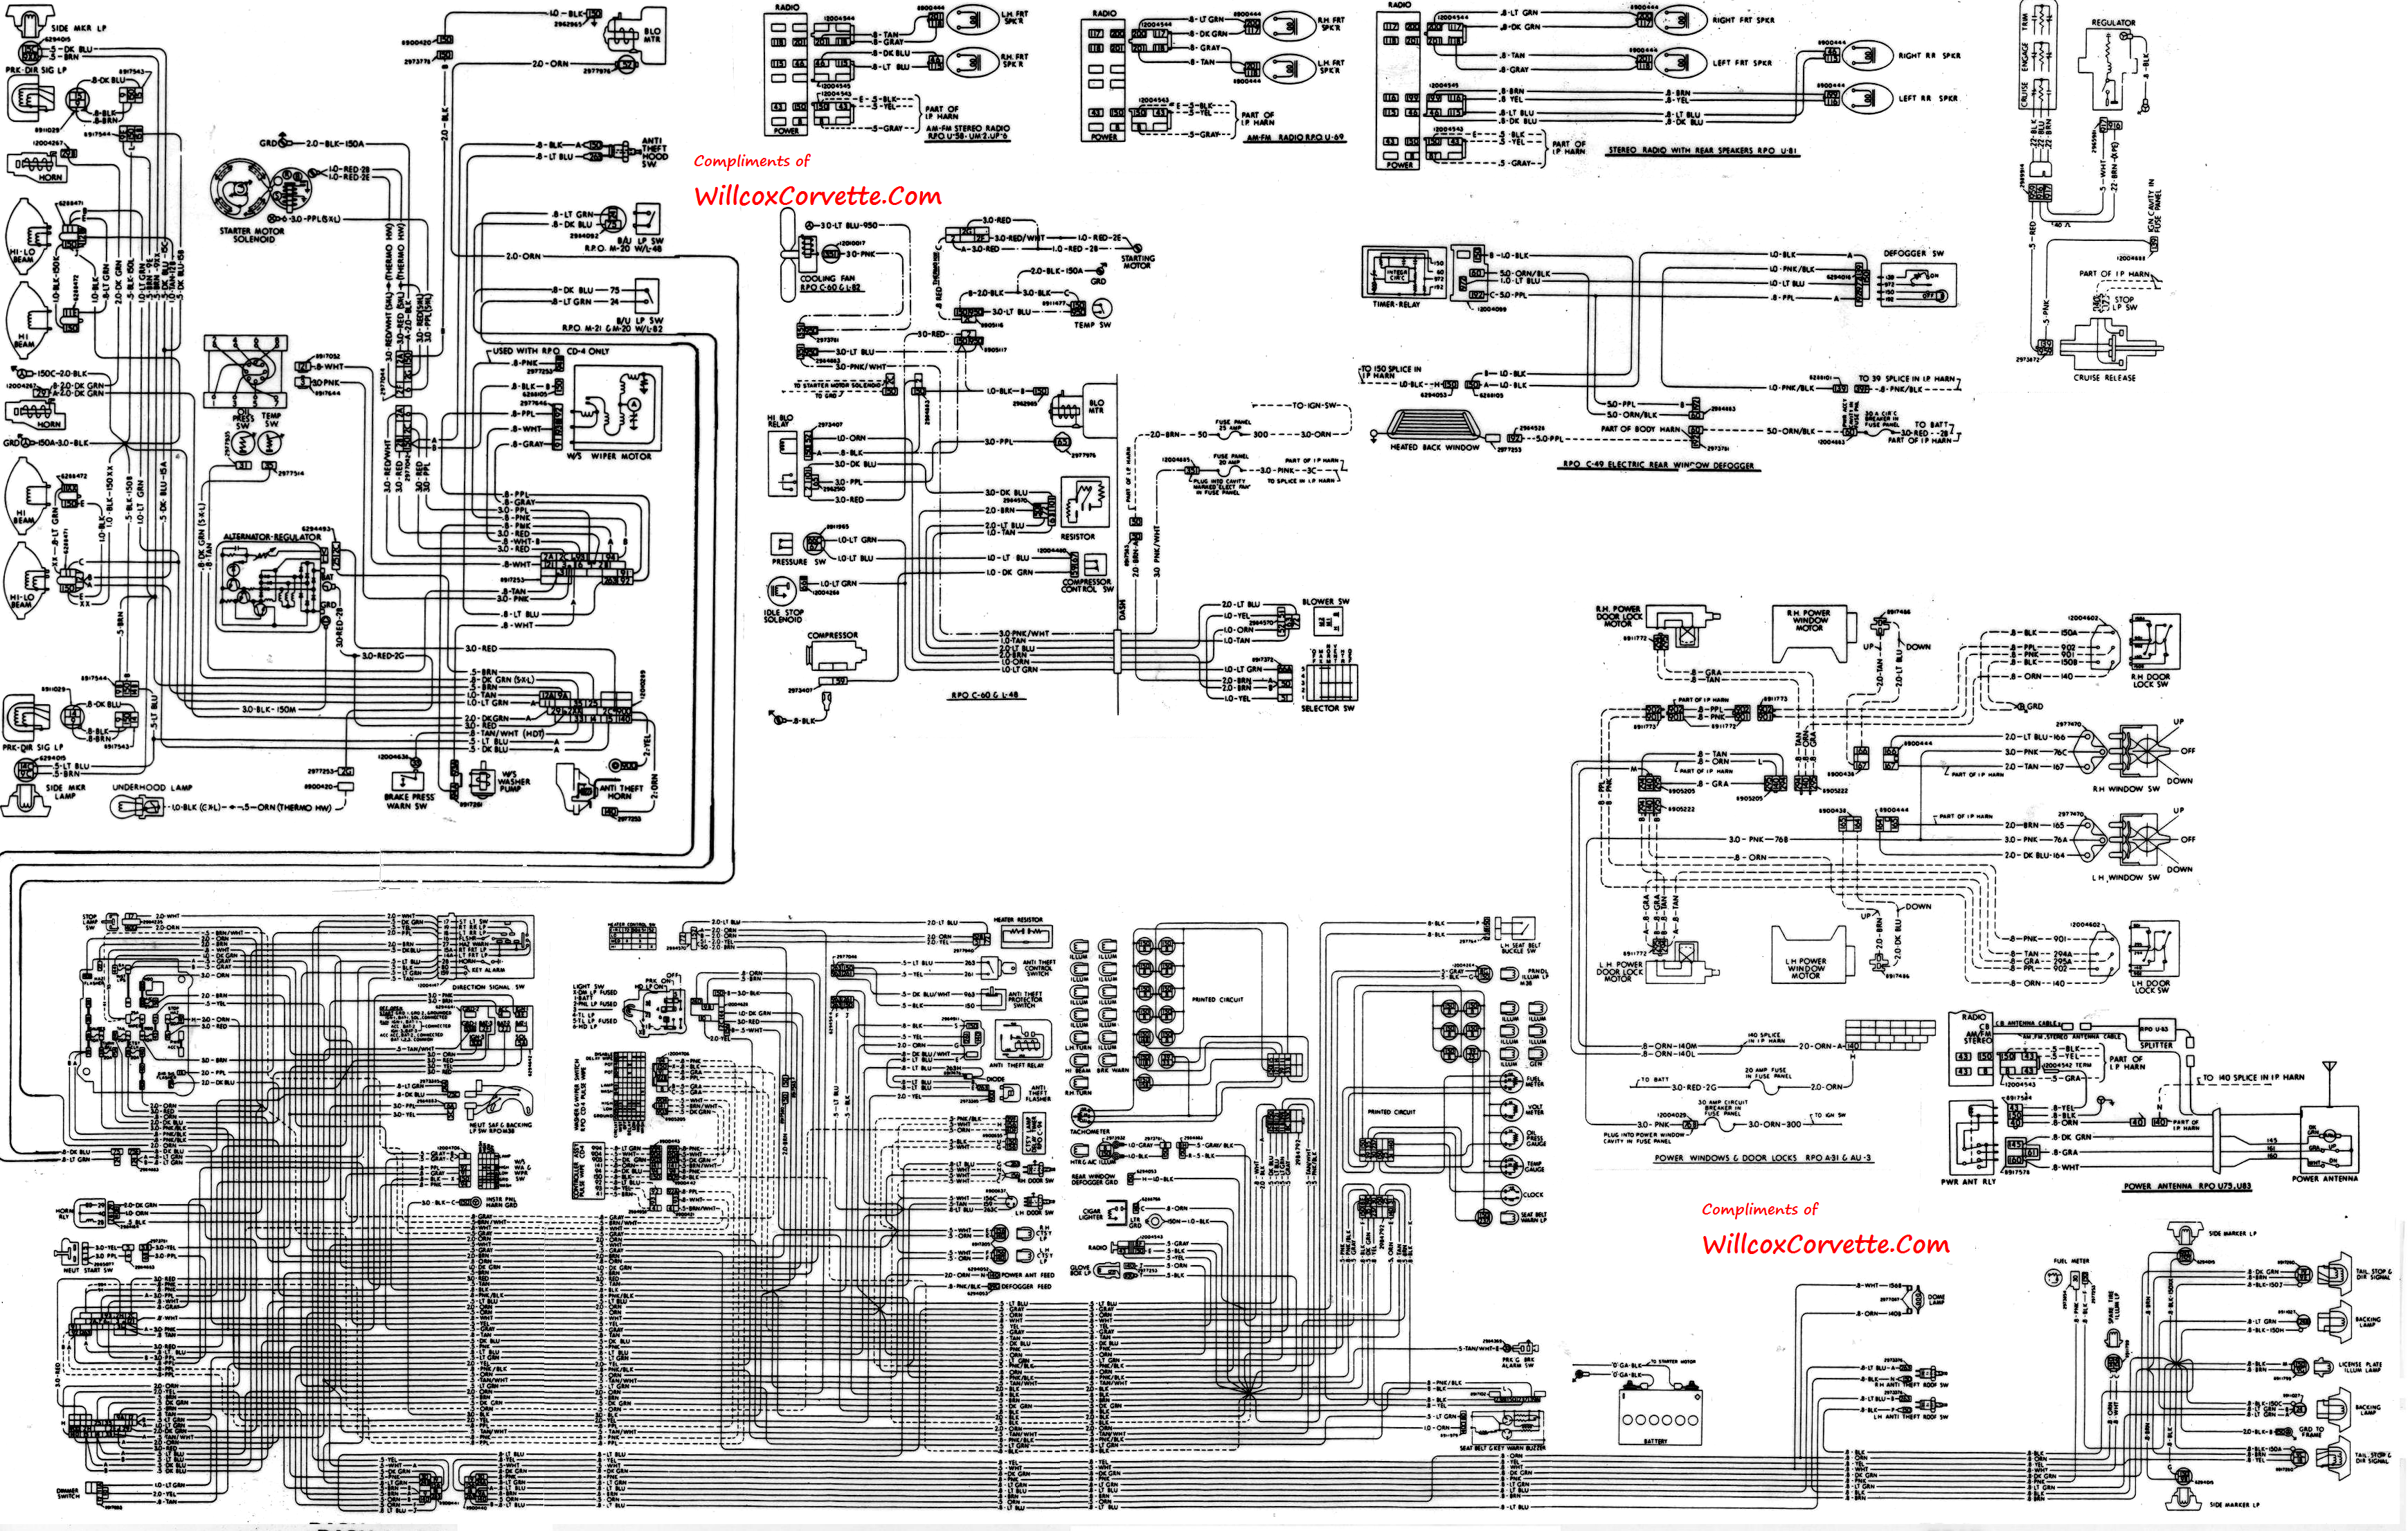 1979 wire diagram 2000 corvette wiring diagram on 2000 download wirning diagrams Corvette Schematics Diagrams at virtualis.co